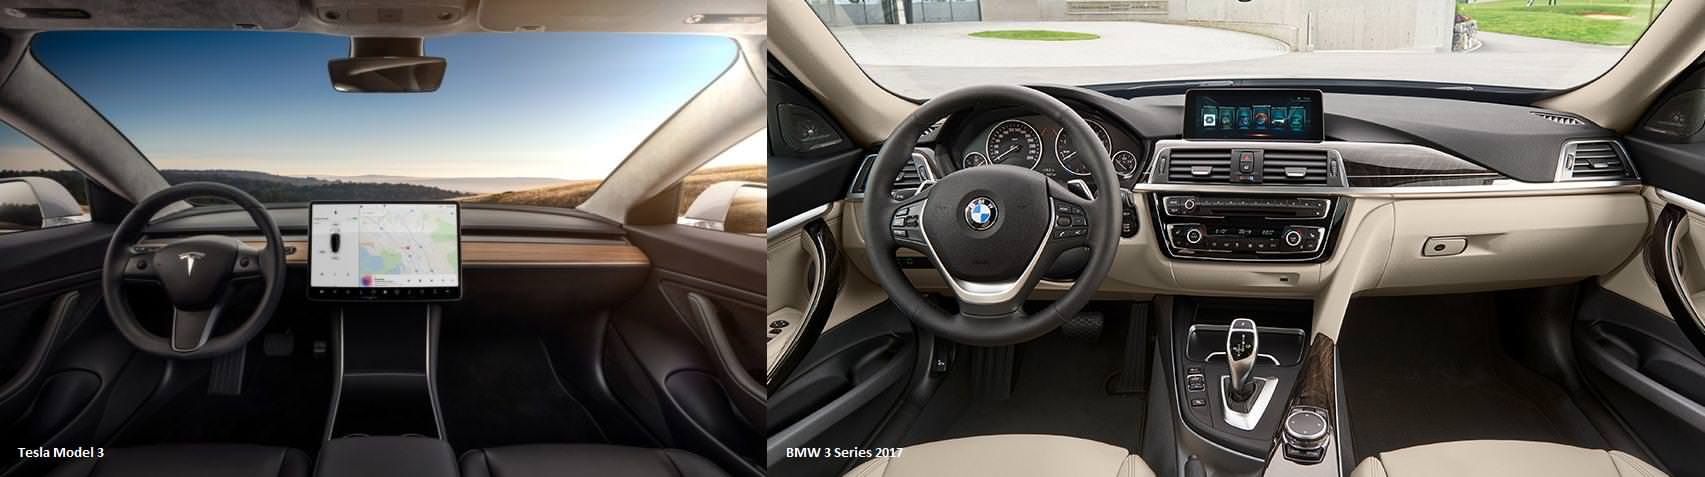 Comparing the interior design – or rather more the cockpits – of Tesla's Model 3 and the BMW 3 Series gives us some shocking revelations how advanced and ...